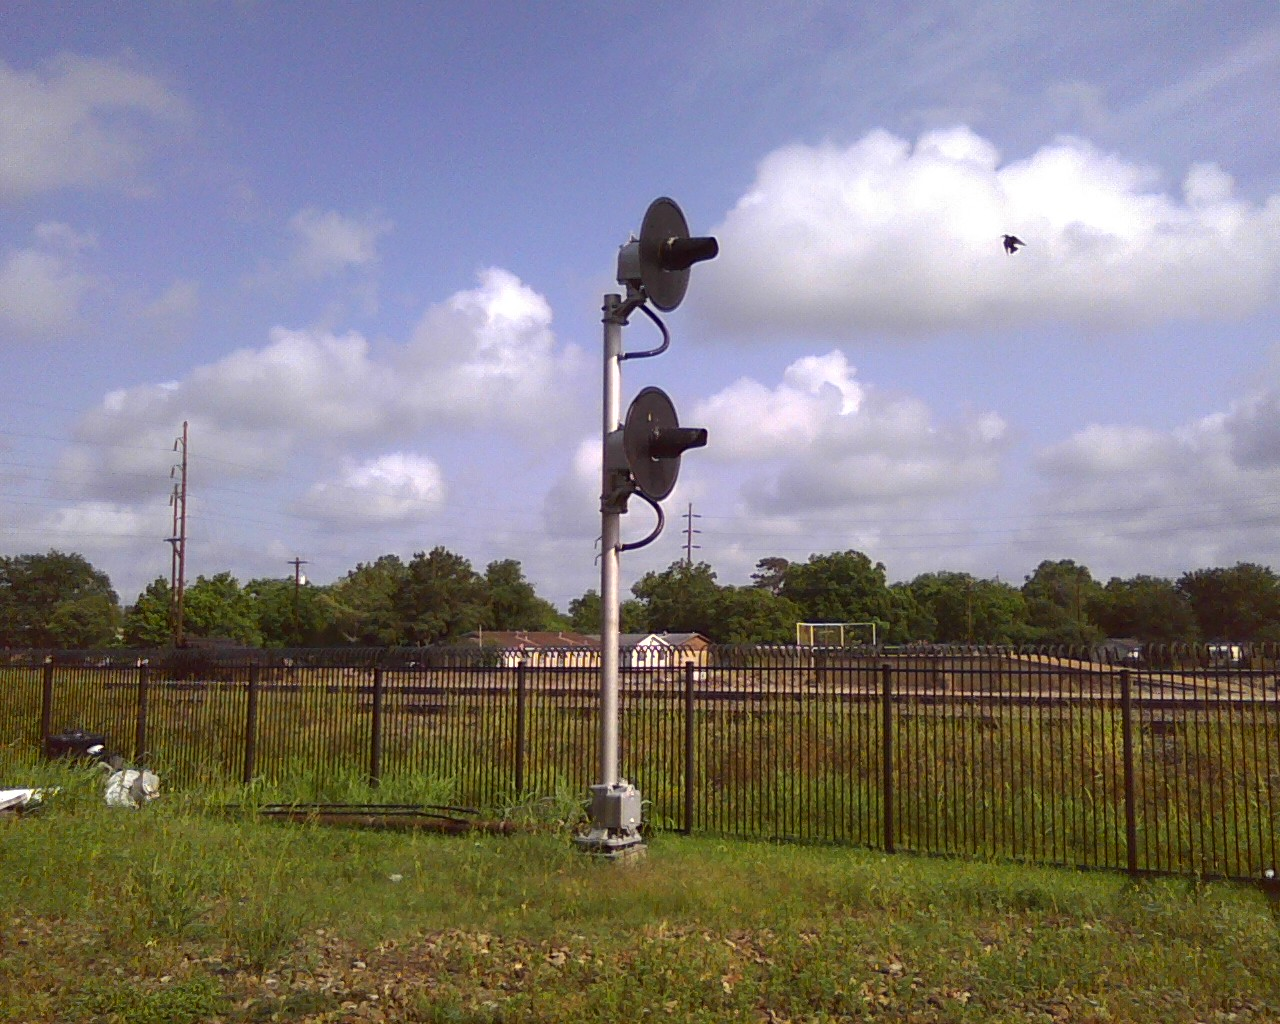 Downtown Rosenberg - Photo05160942_1.jpg